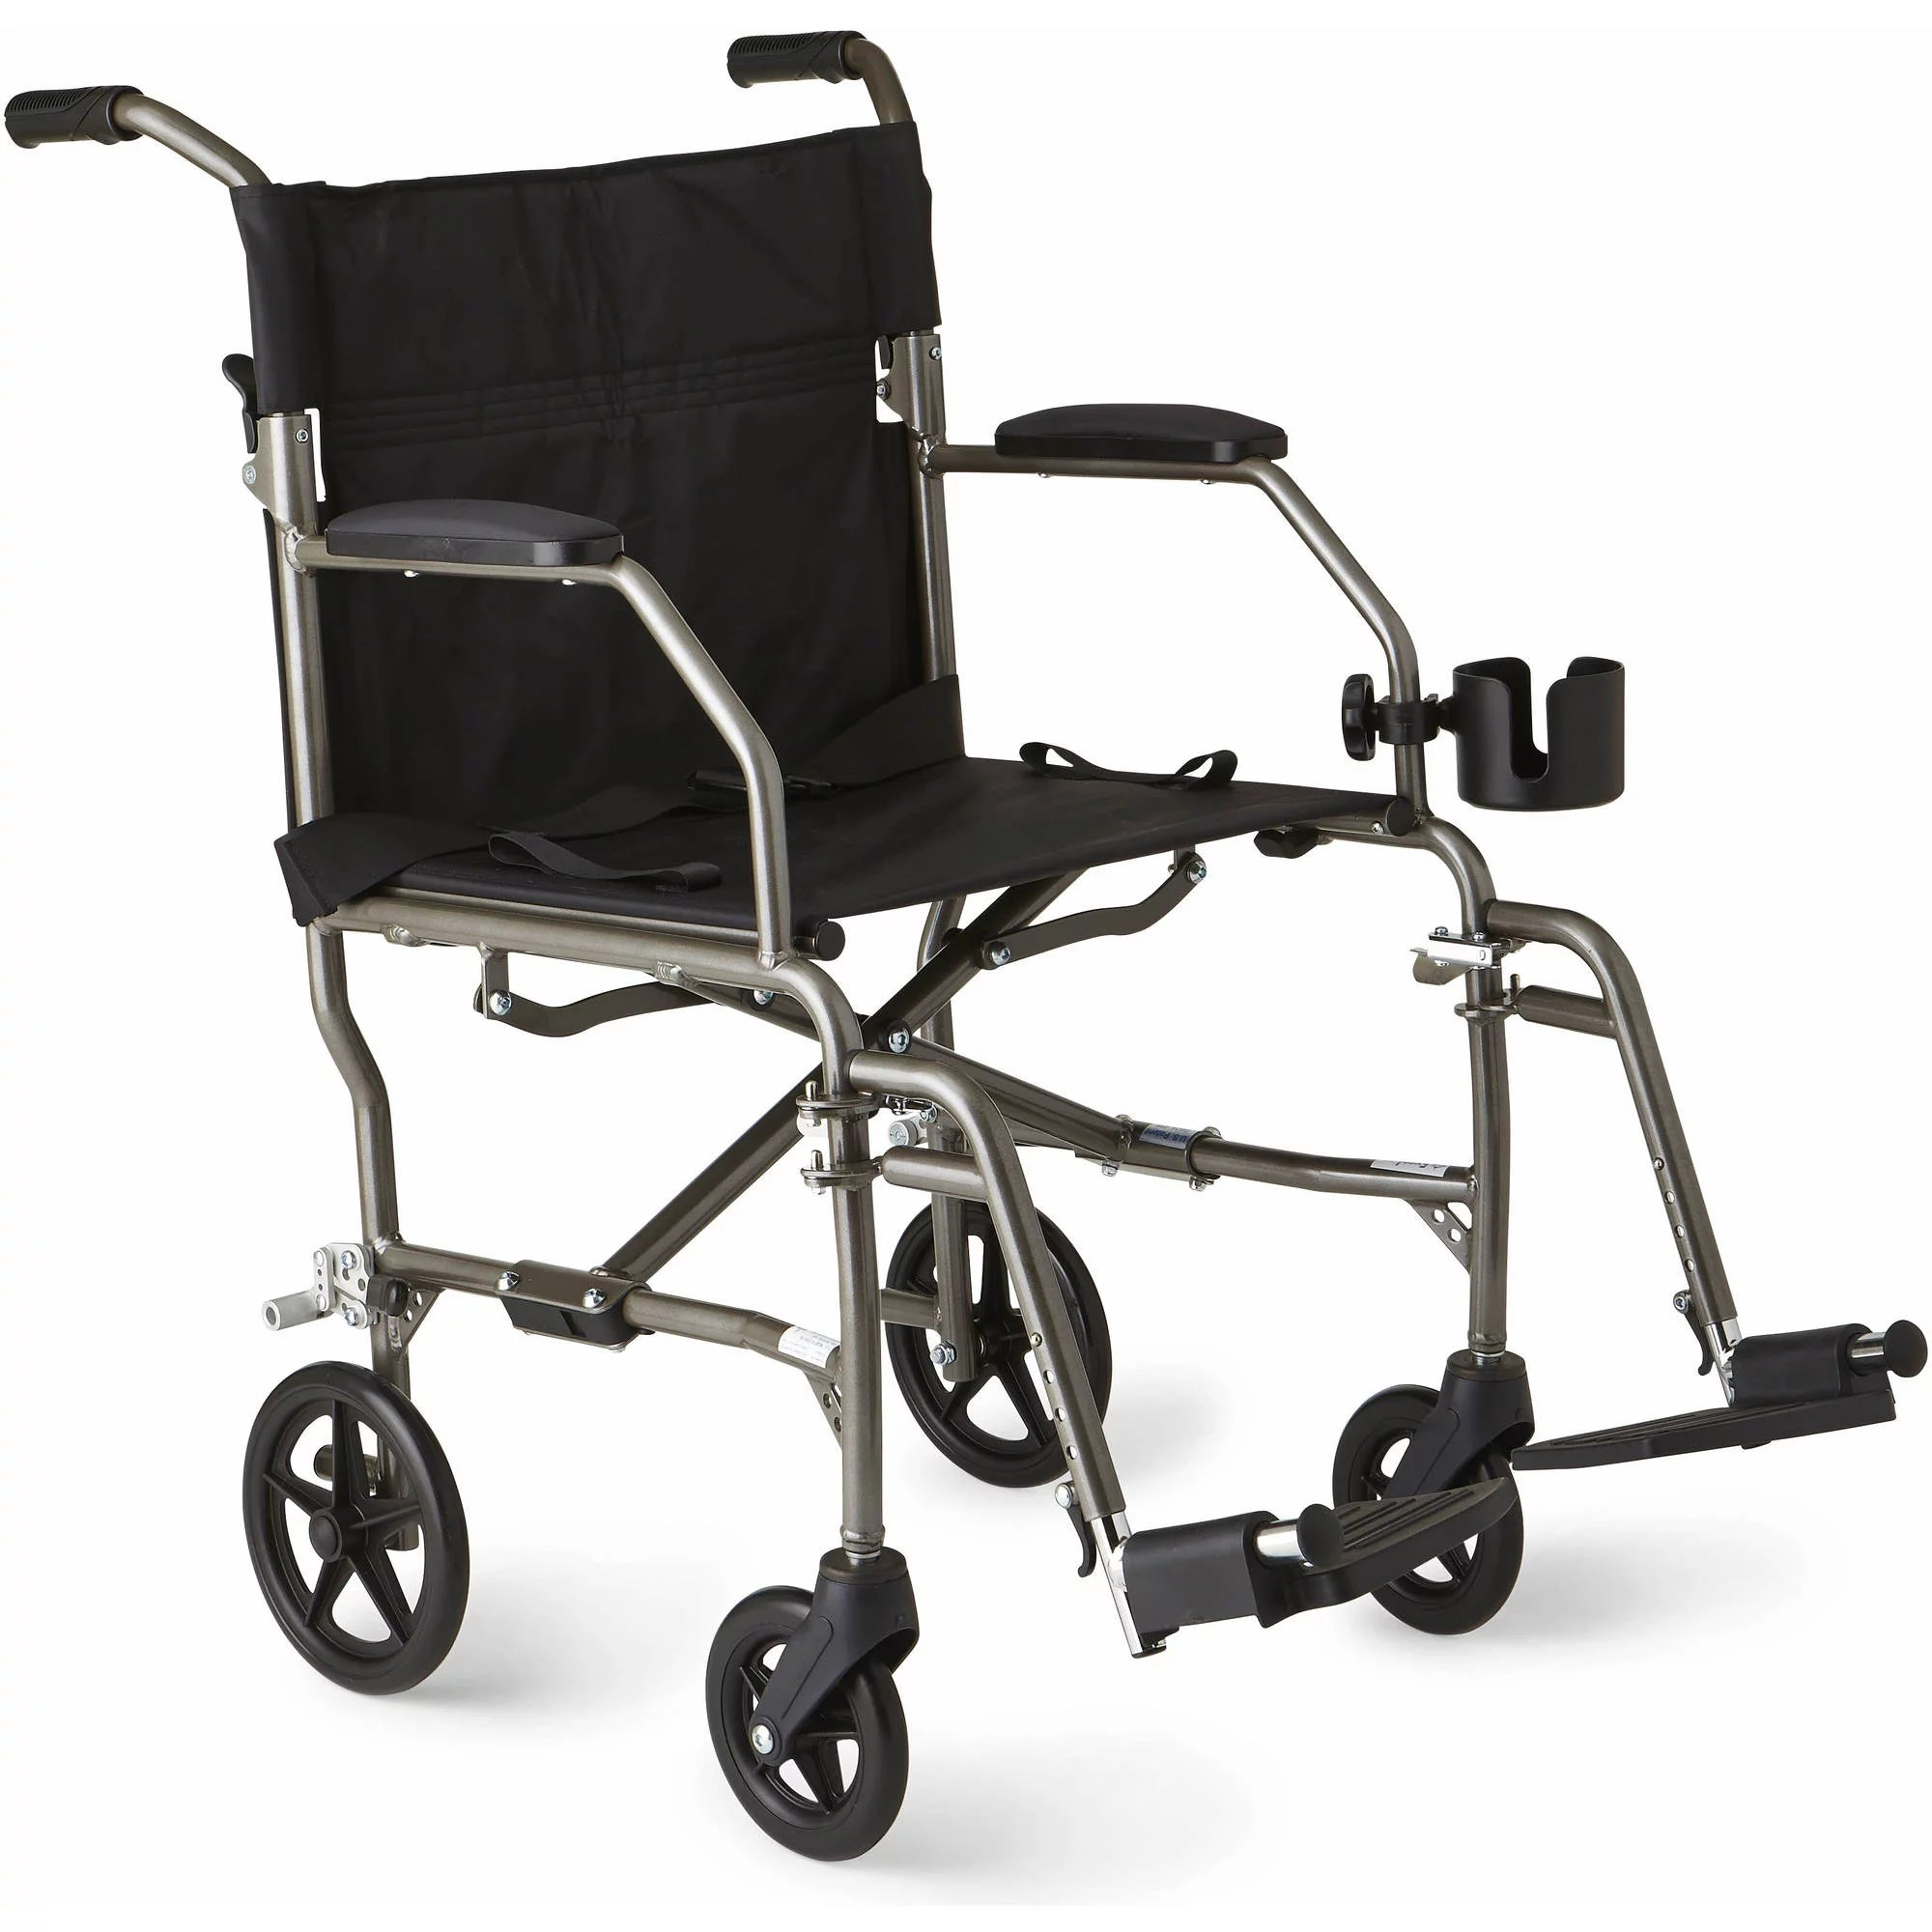 Bed Wheelchair Medline K1 Basic Extra Wide Wheelchair With Swing Away Footrests